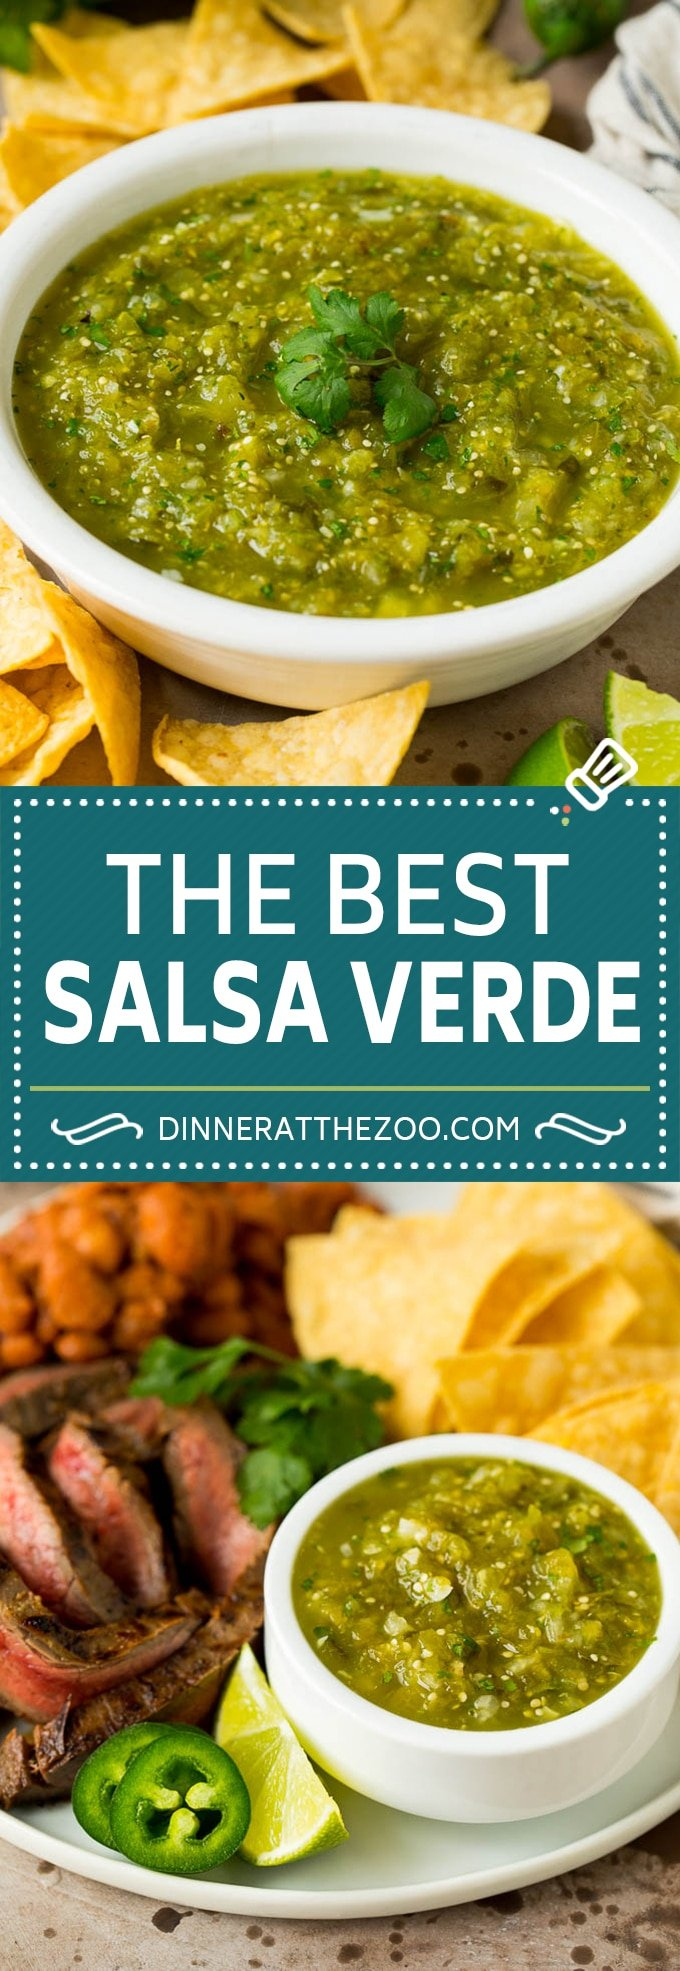 This homemade salsa verde is a combination of roasted chilies, tomatillos, garlic, cilantro and lime juice, all blended together to make a light and refreshing dip.